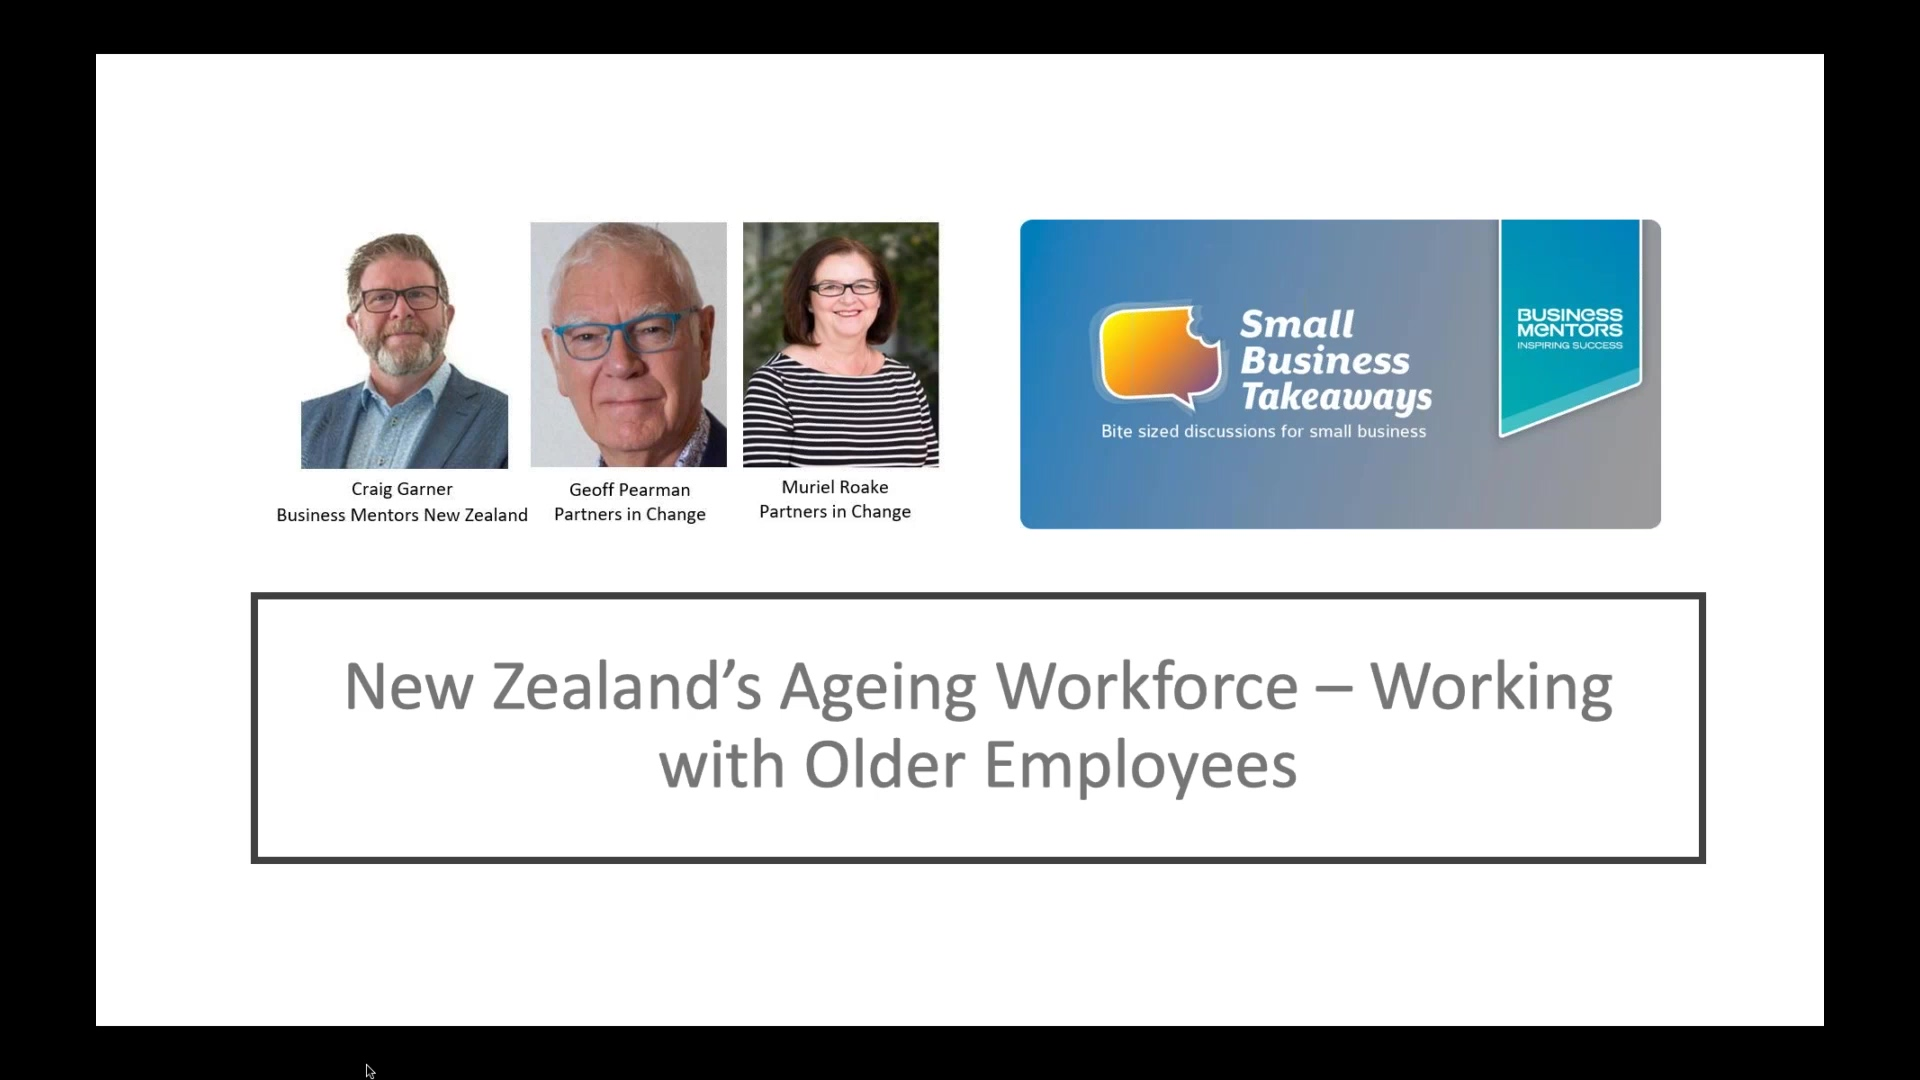 BMNZ New Zealands Ageing Workforce - Working with Older Employees